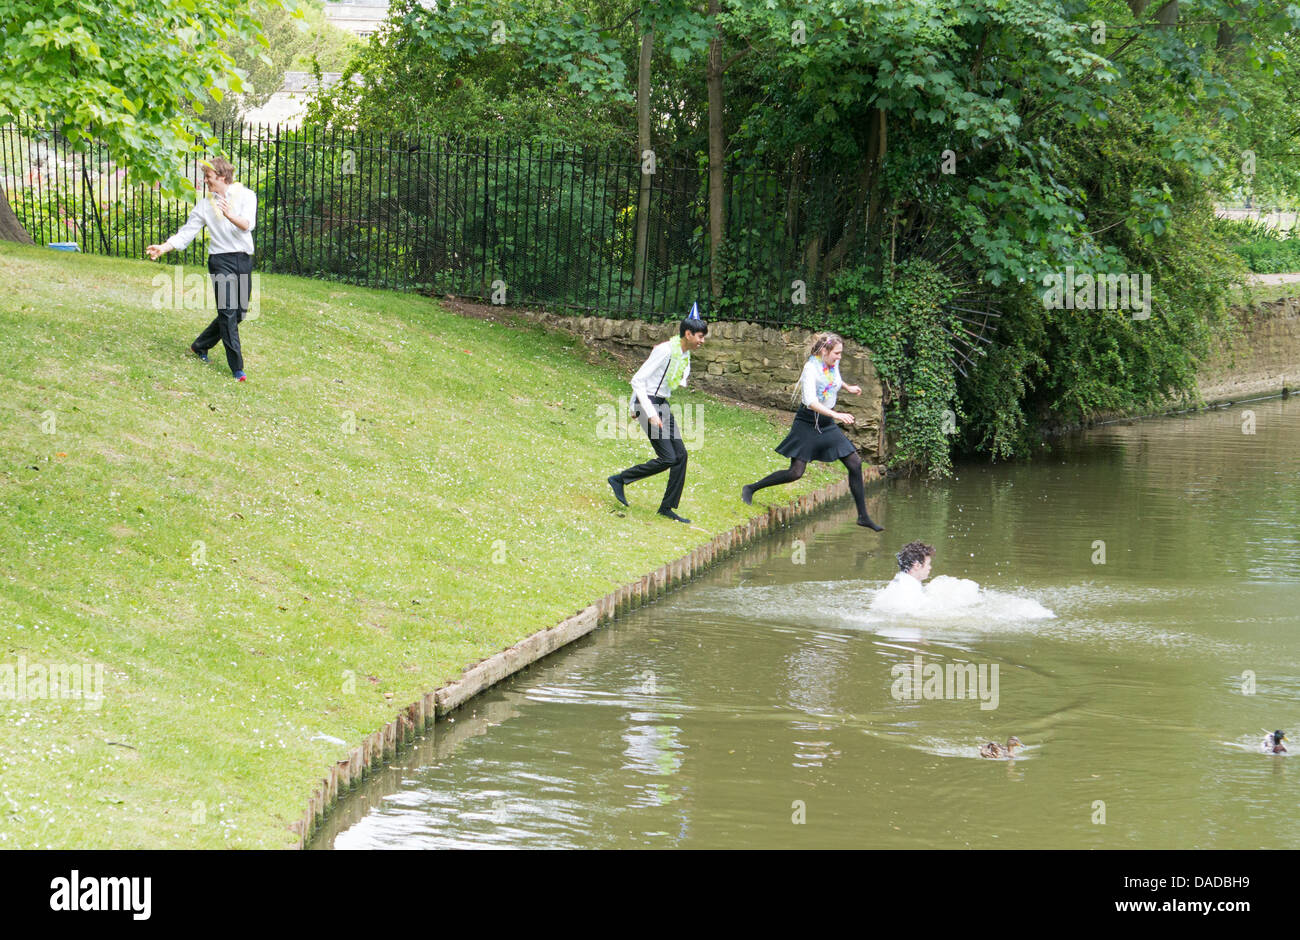 Oxford University students celebrate completion of final exams by jumping in river - Stock Image